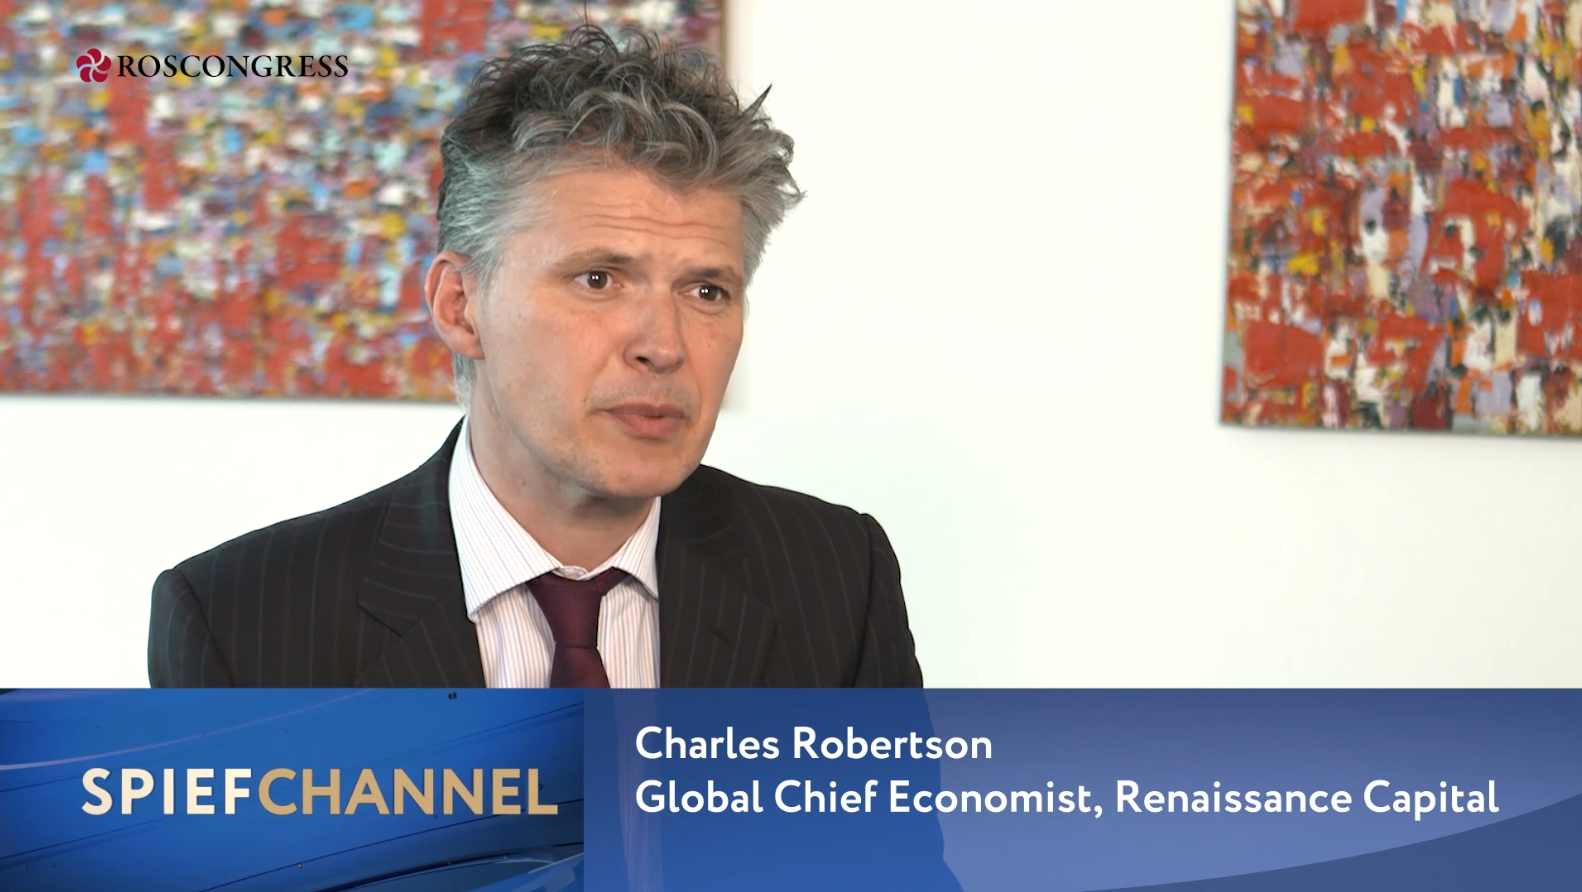 Charles Robertson, Global Chief Economist, Renaissance Capital